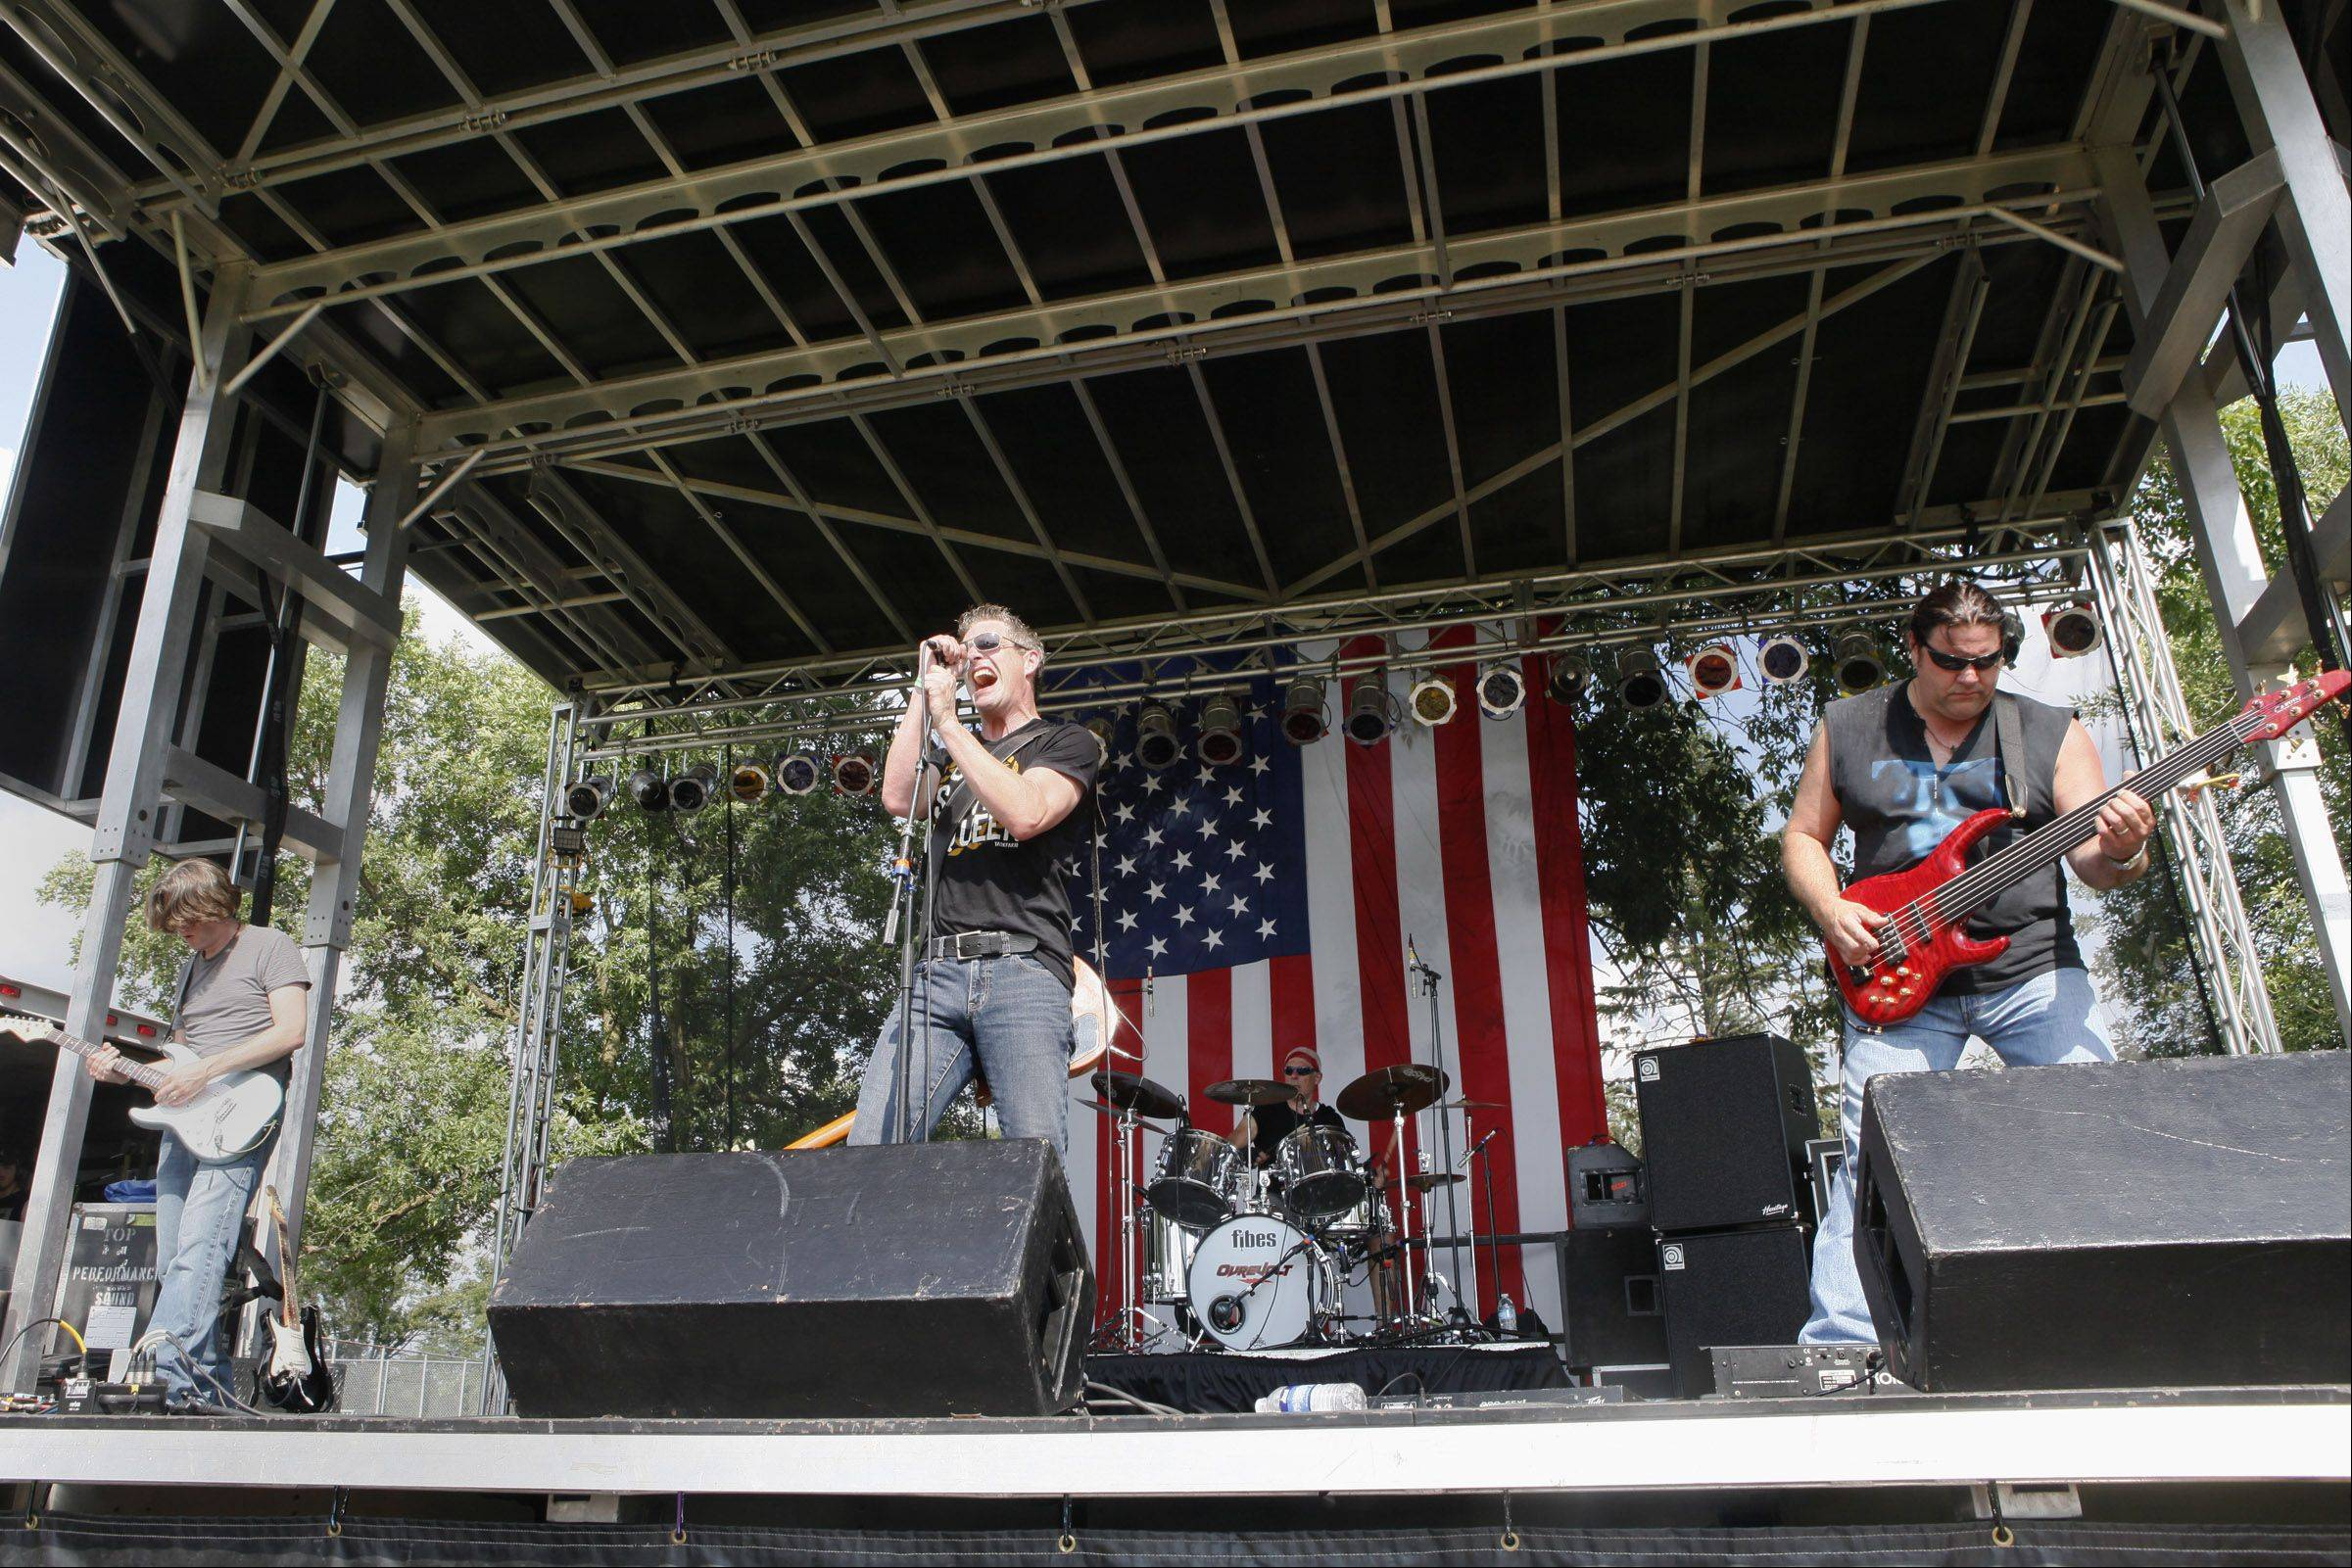 The main stage at Taste of Lombard will host 17 bands over the festival's five days.